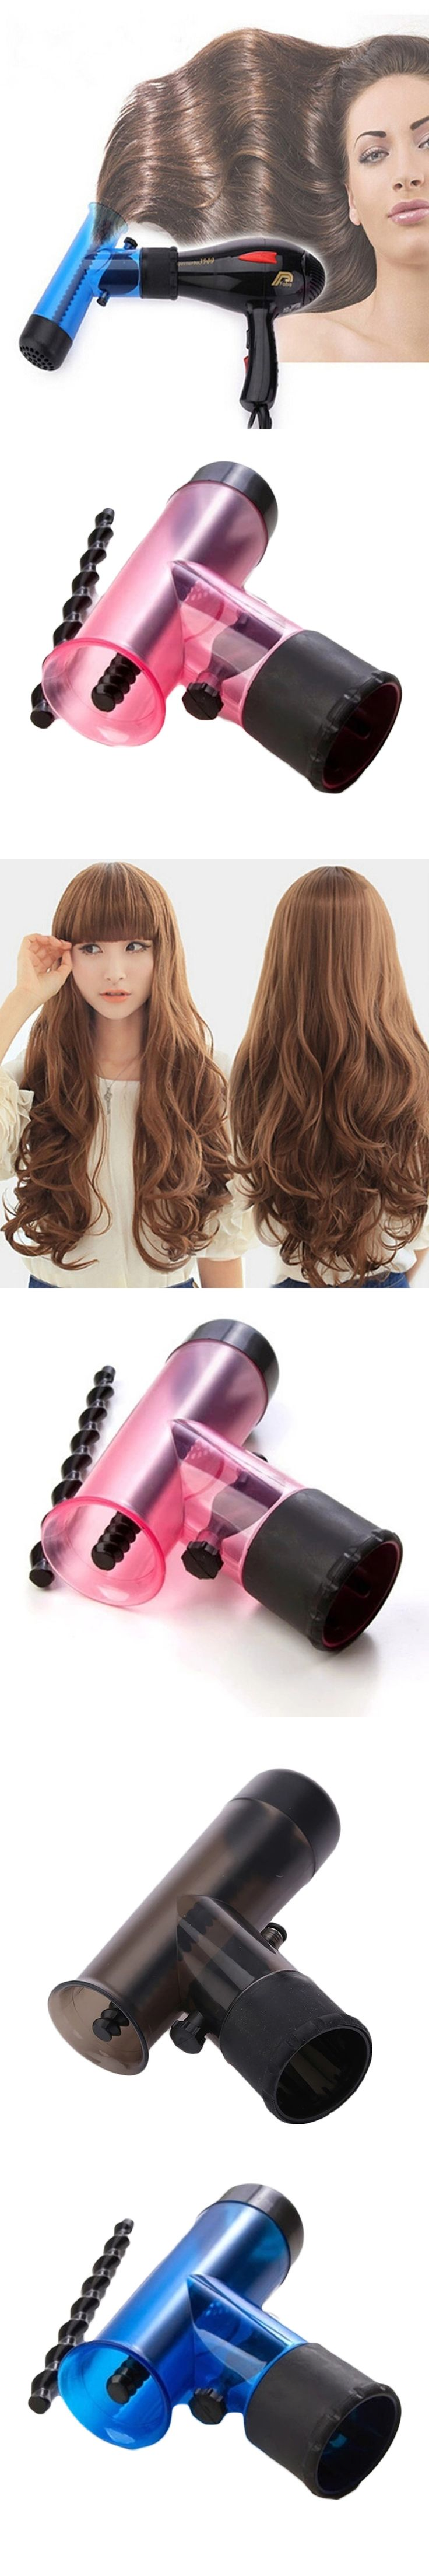 New Hair Dryer Diffuser Magic Wind Spin Curl Hair Salon Styling Tools Hair Roller Curler Make Hair Curly Without Damage